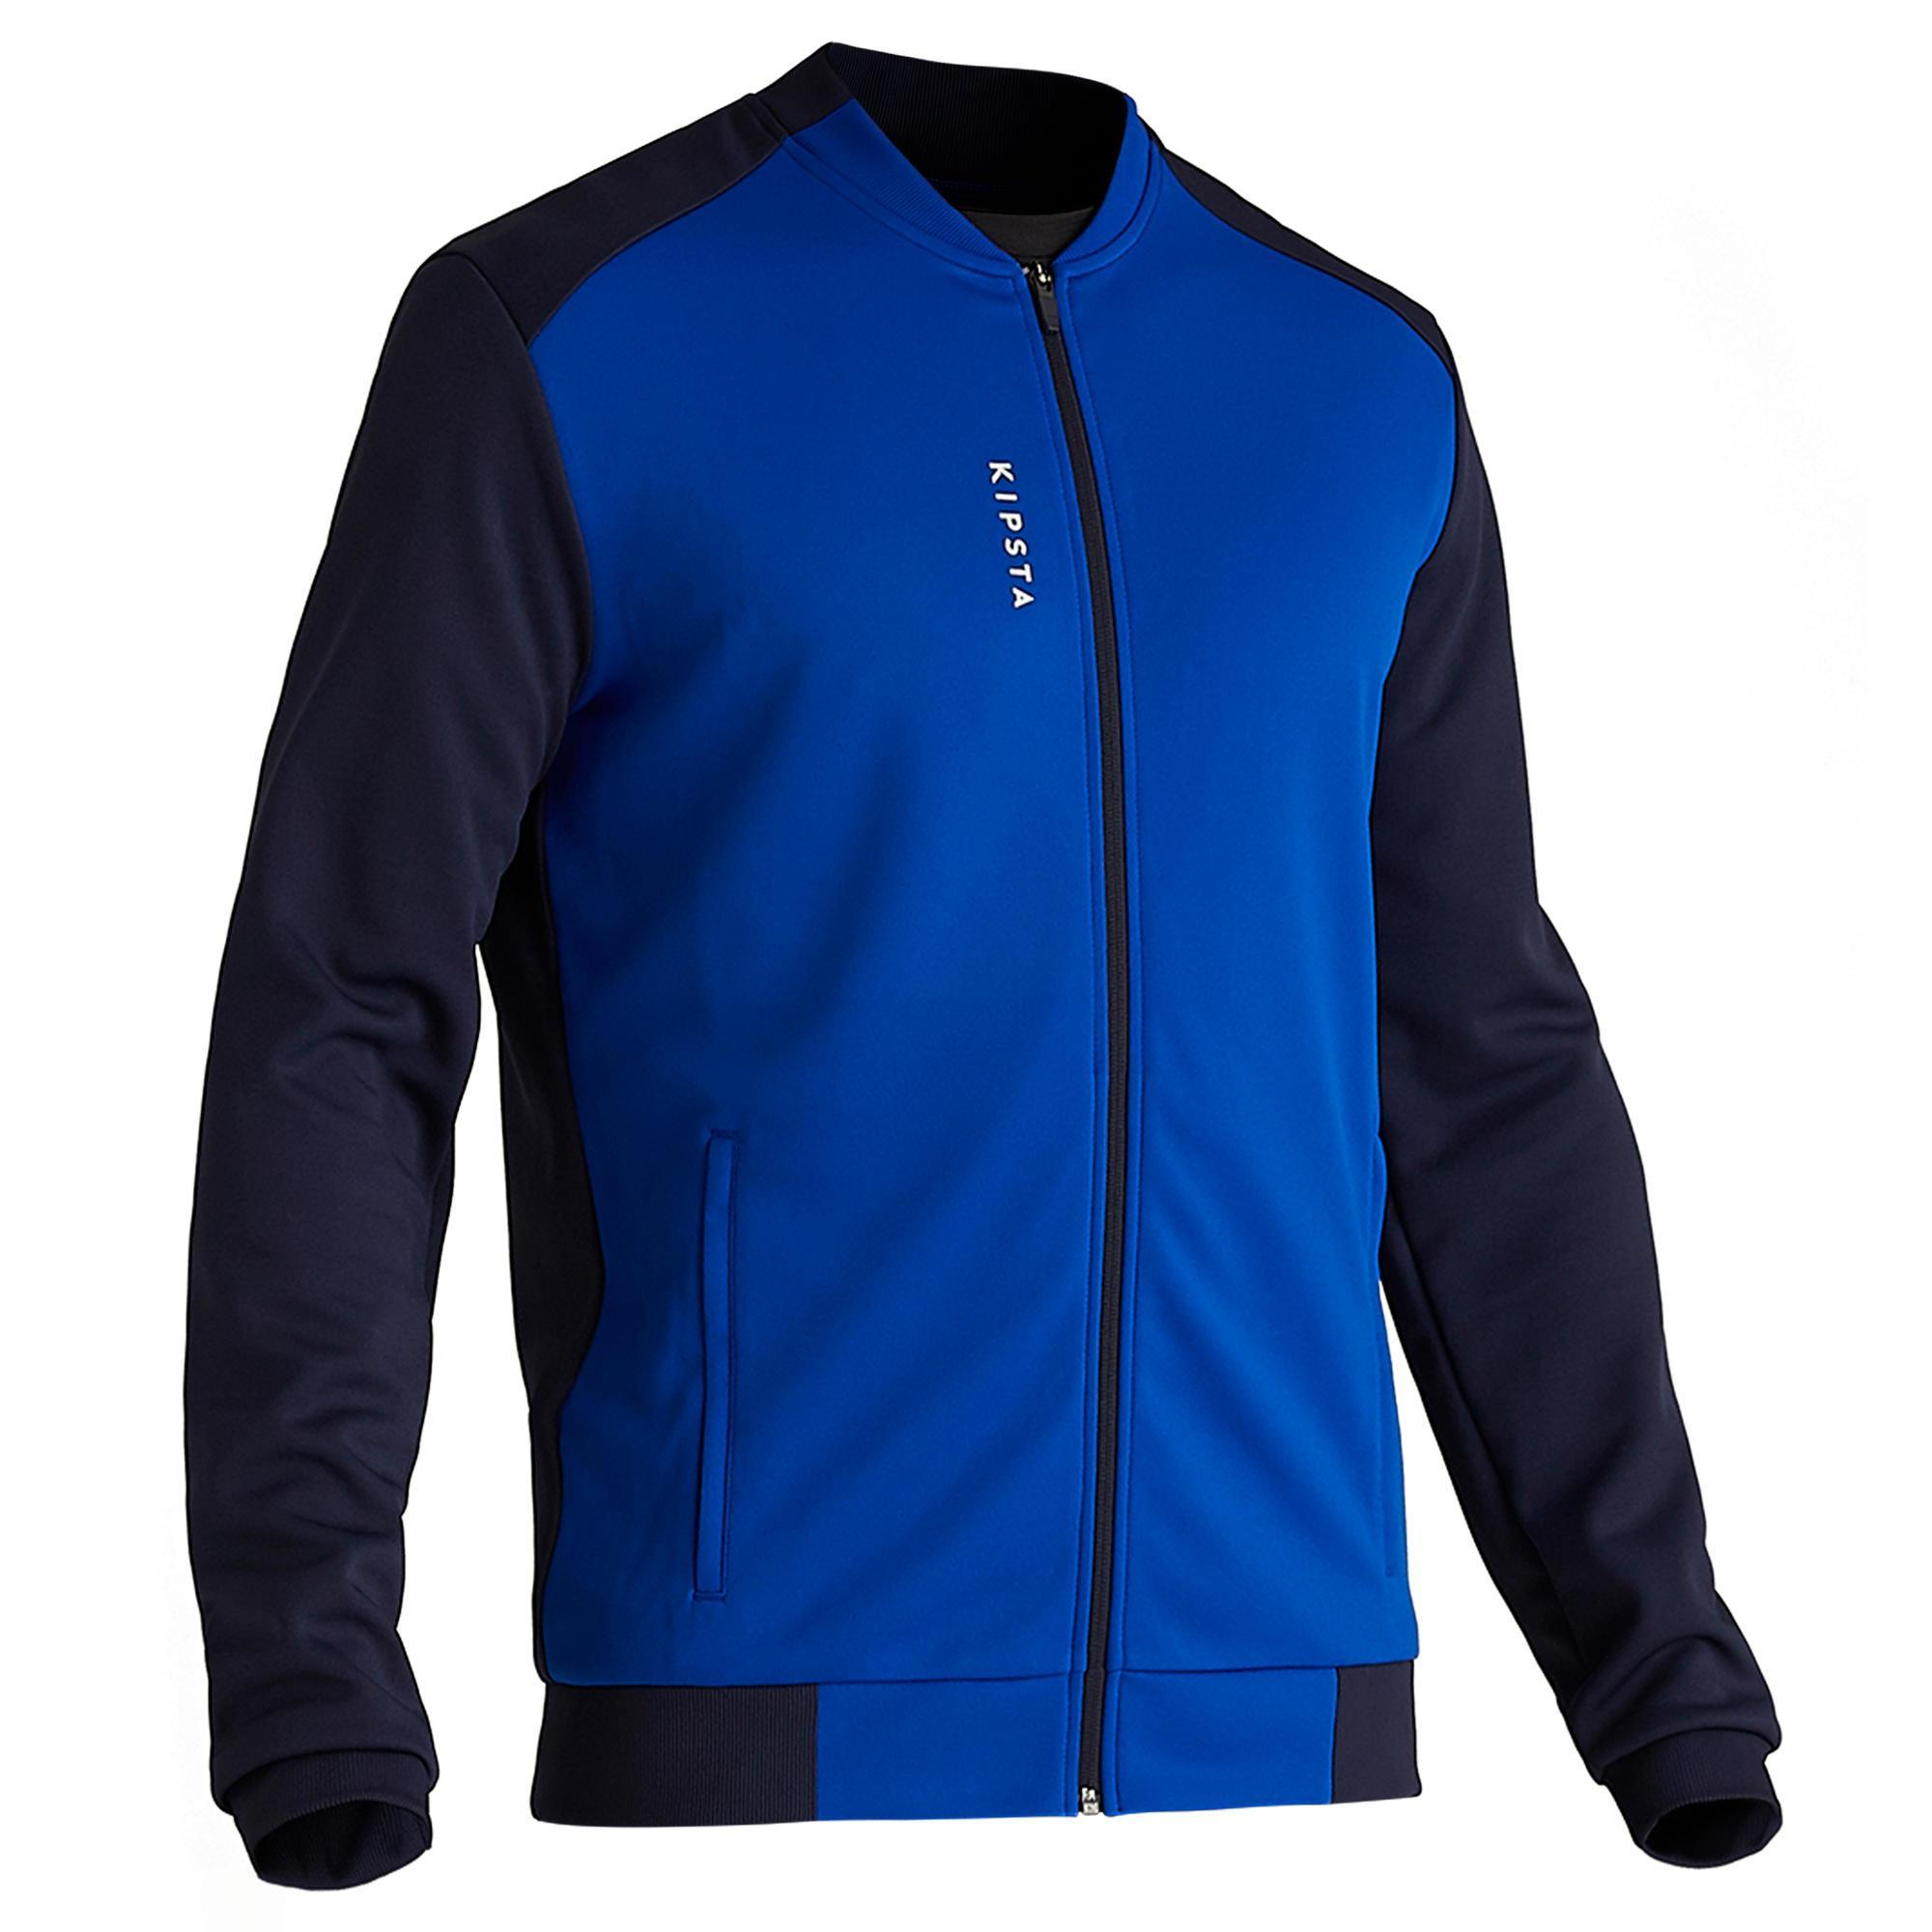 Veste de football légère adulte t100 bleue kipsta